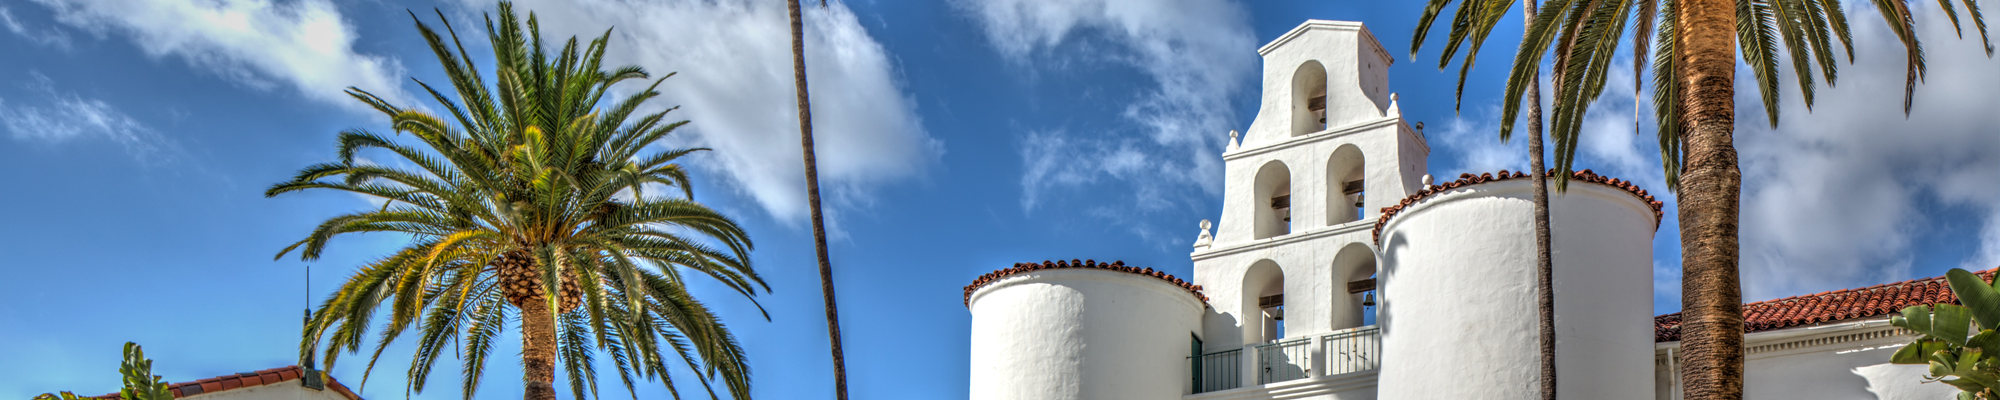 top of hepner hall